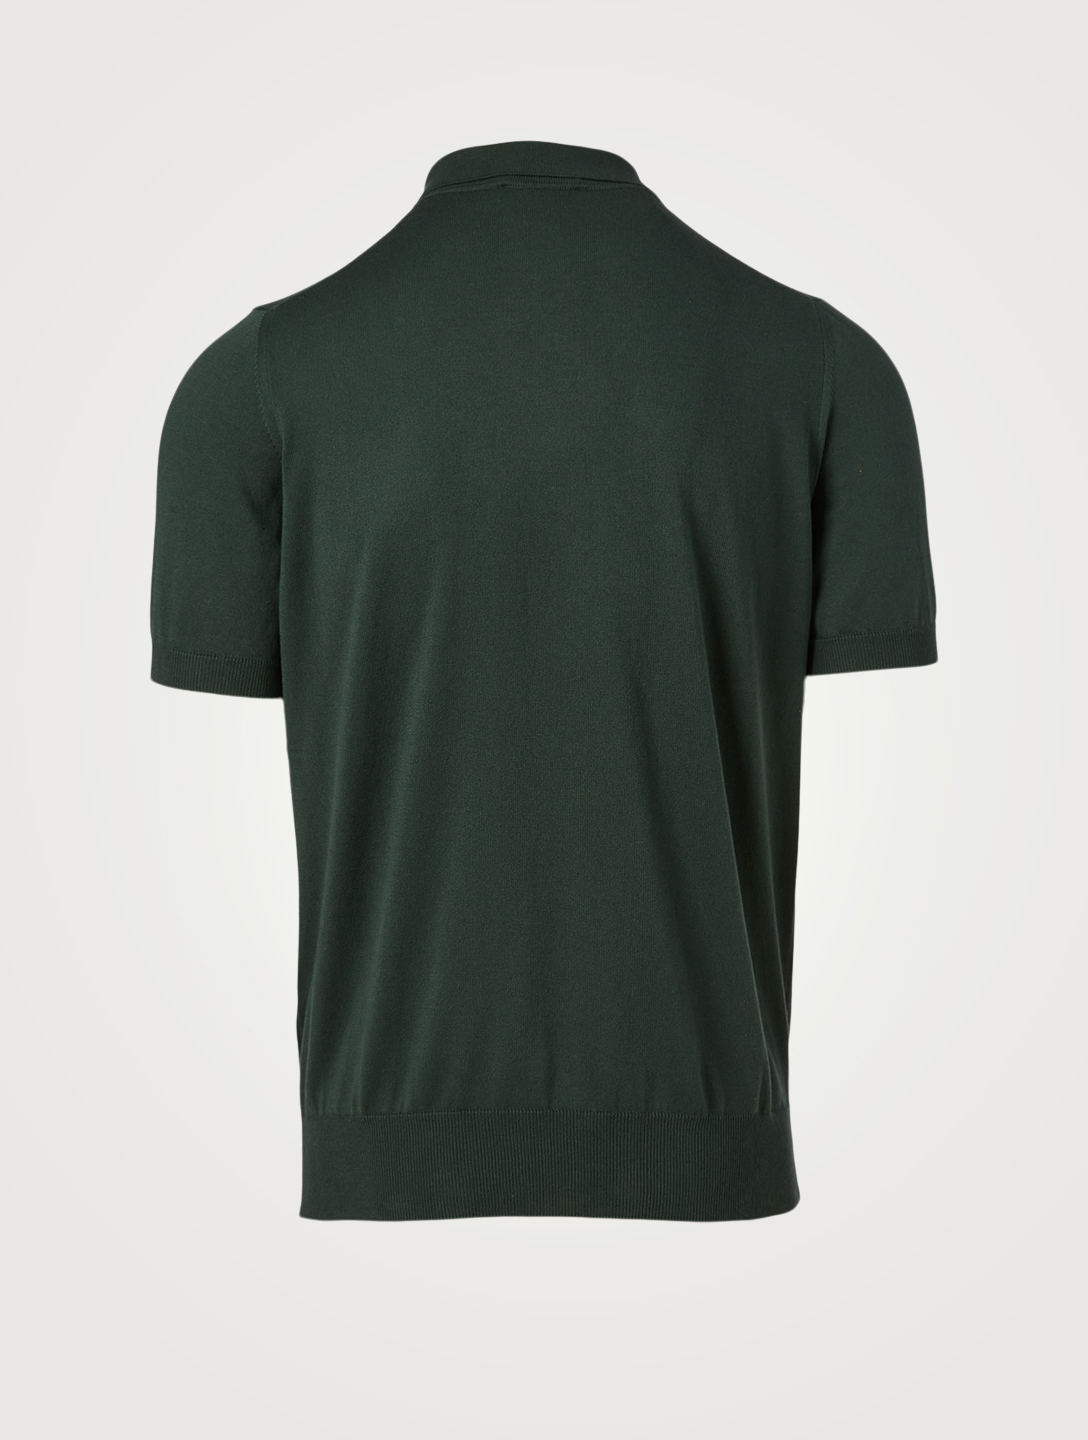 CANALI Cotton Polo Shirt Men's Green